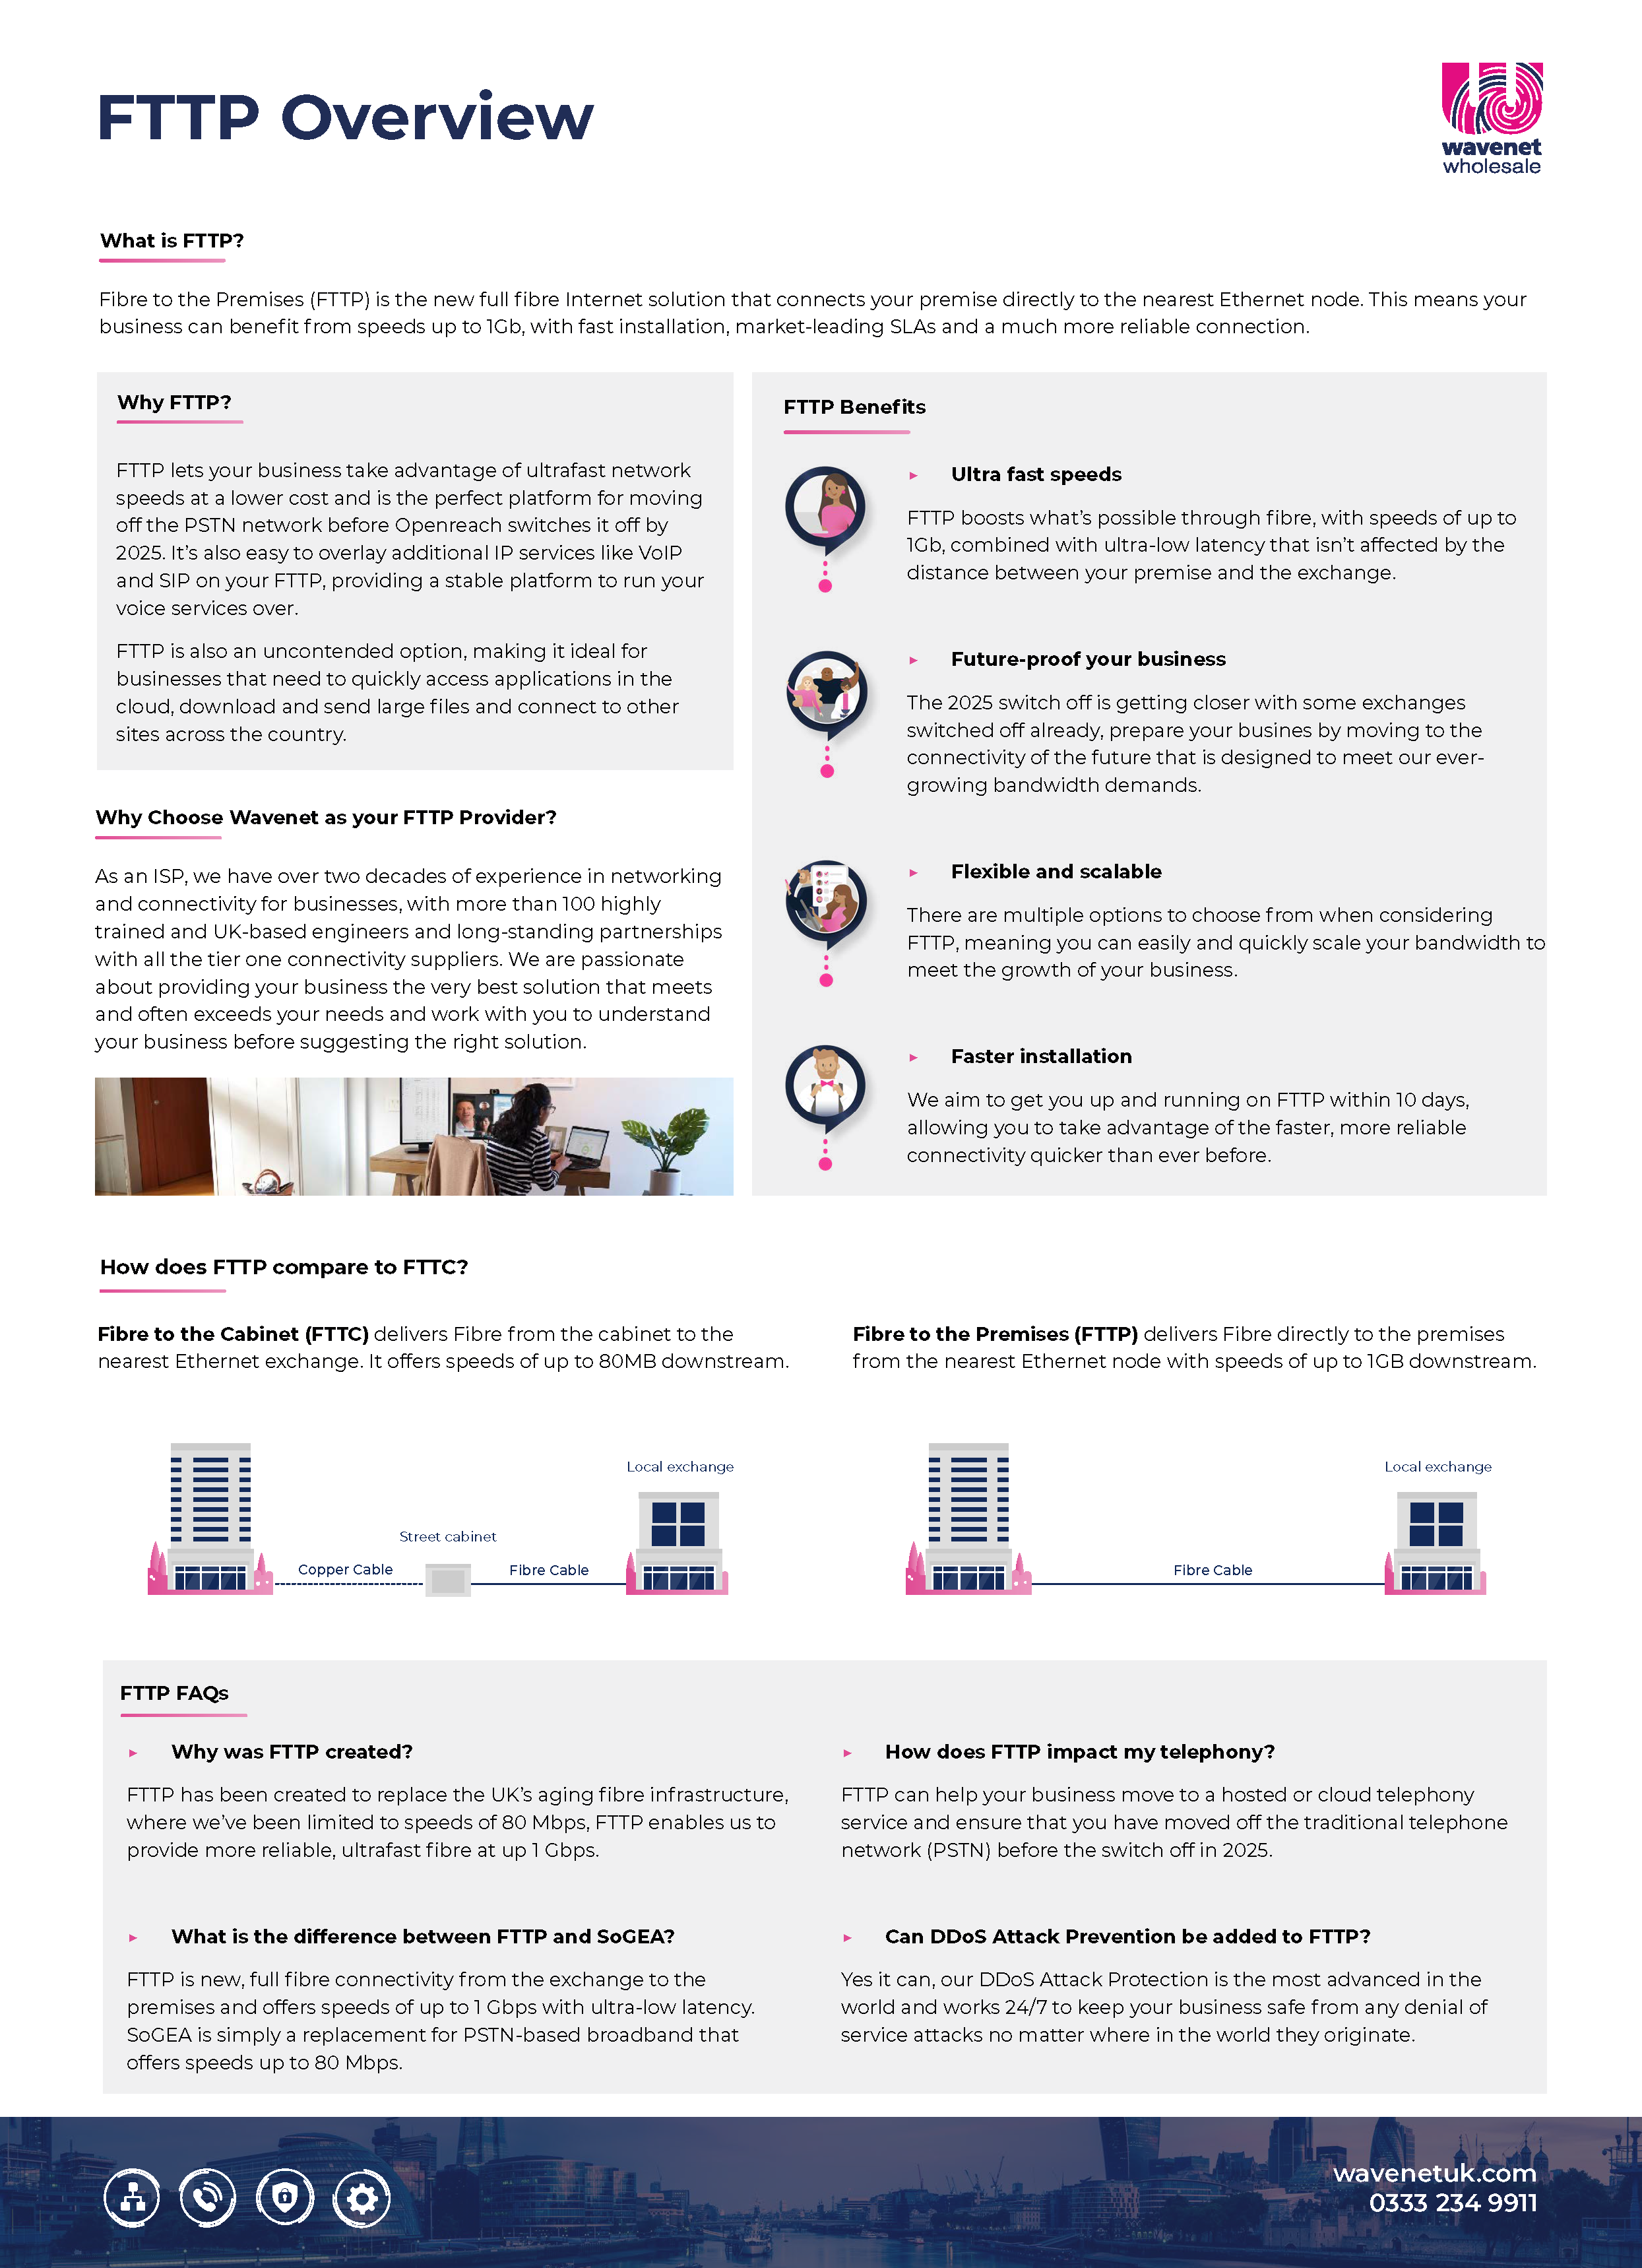 FTTP One Pager Wholesale